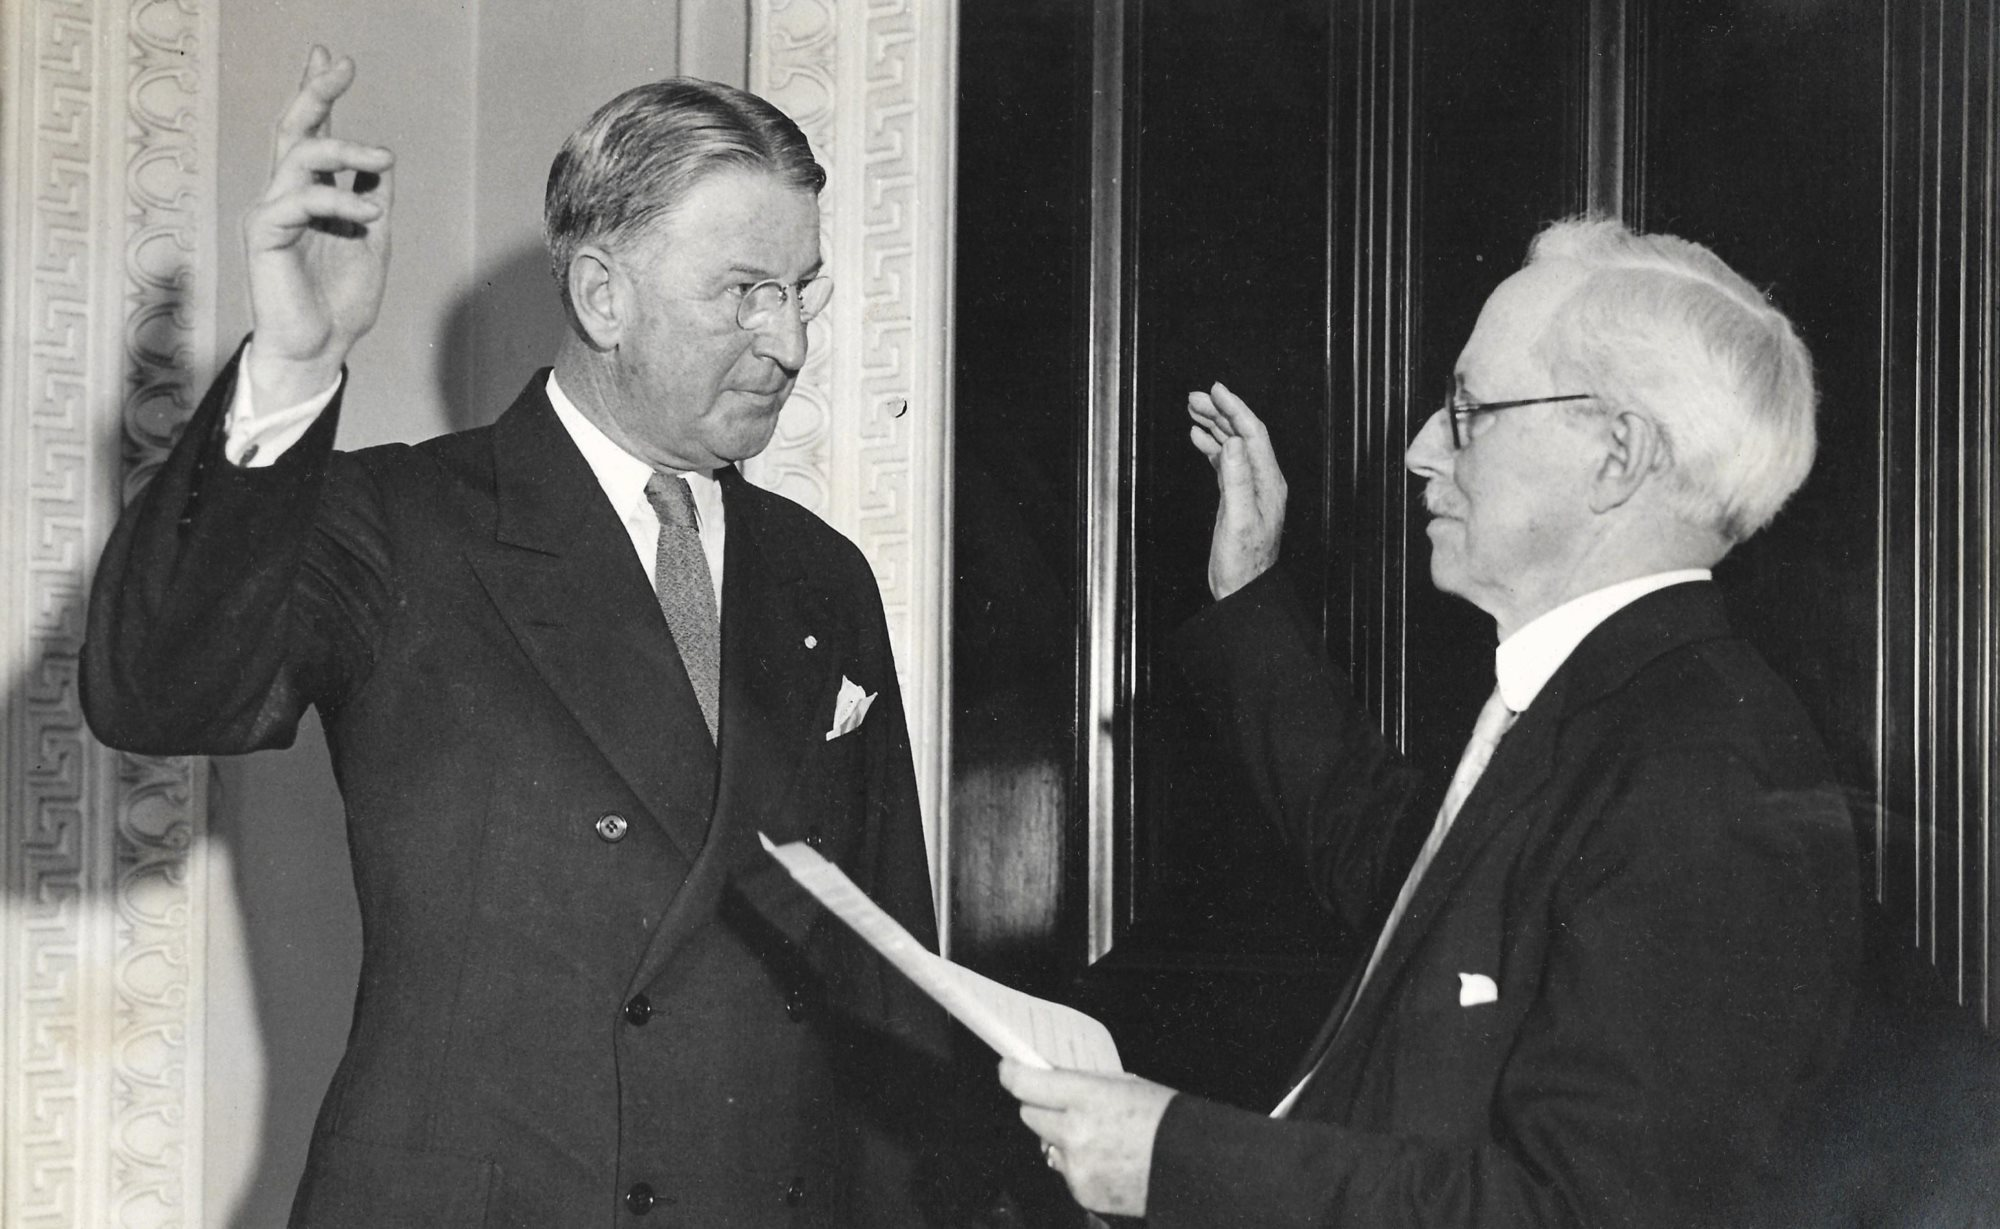 Alexander Weddell takes oath as official Ambassador to Argentina before Professor William H. McNeill, August 1, 1933